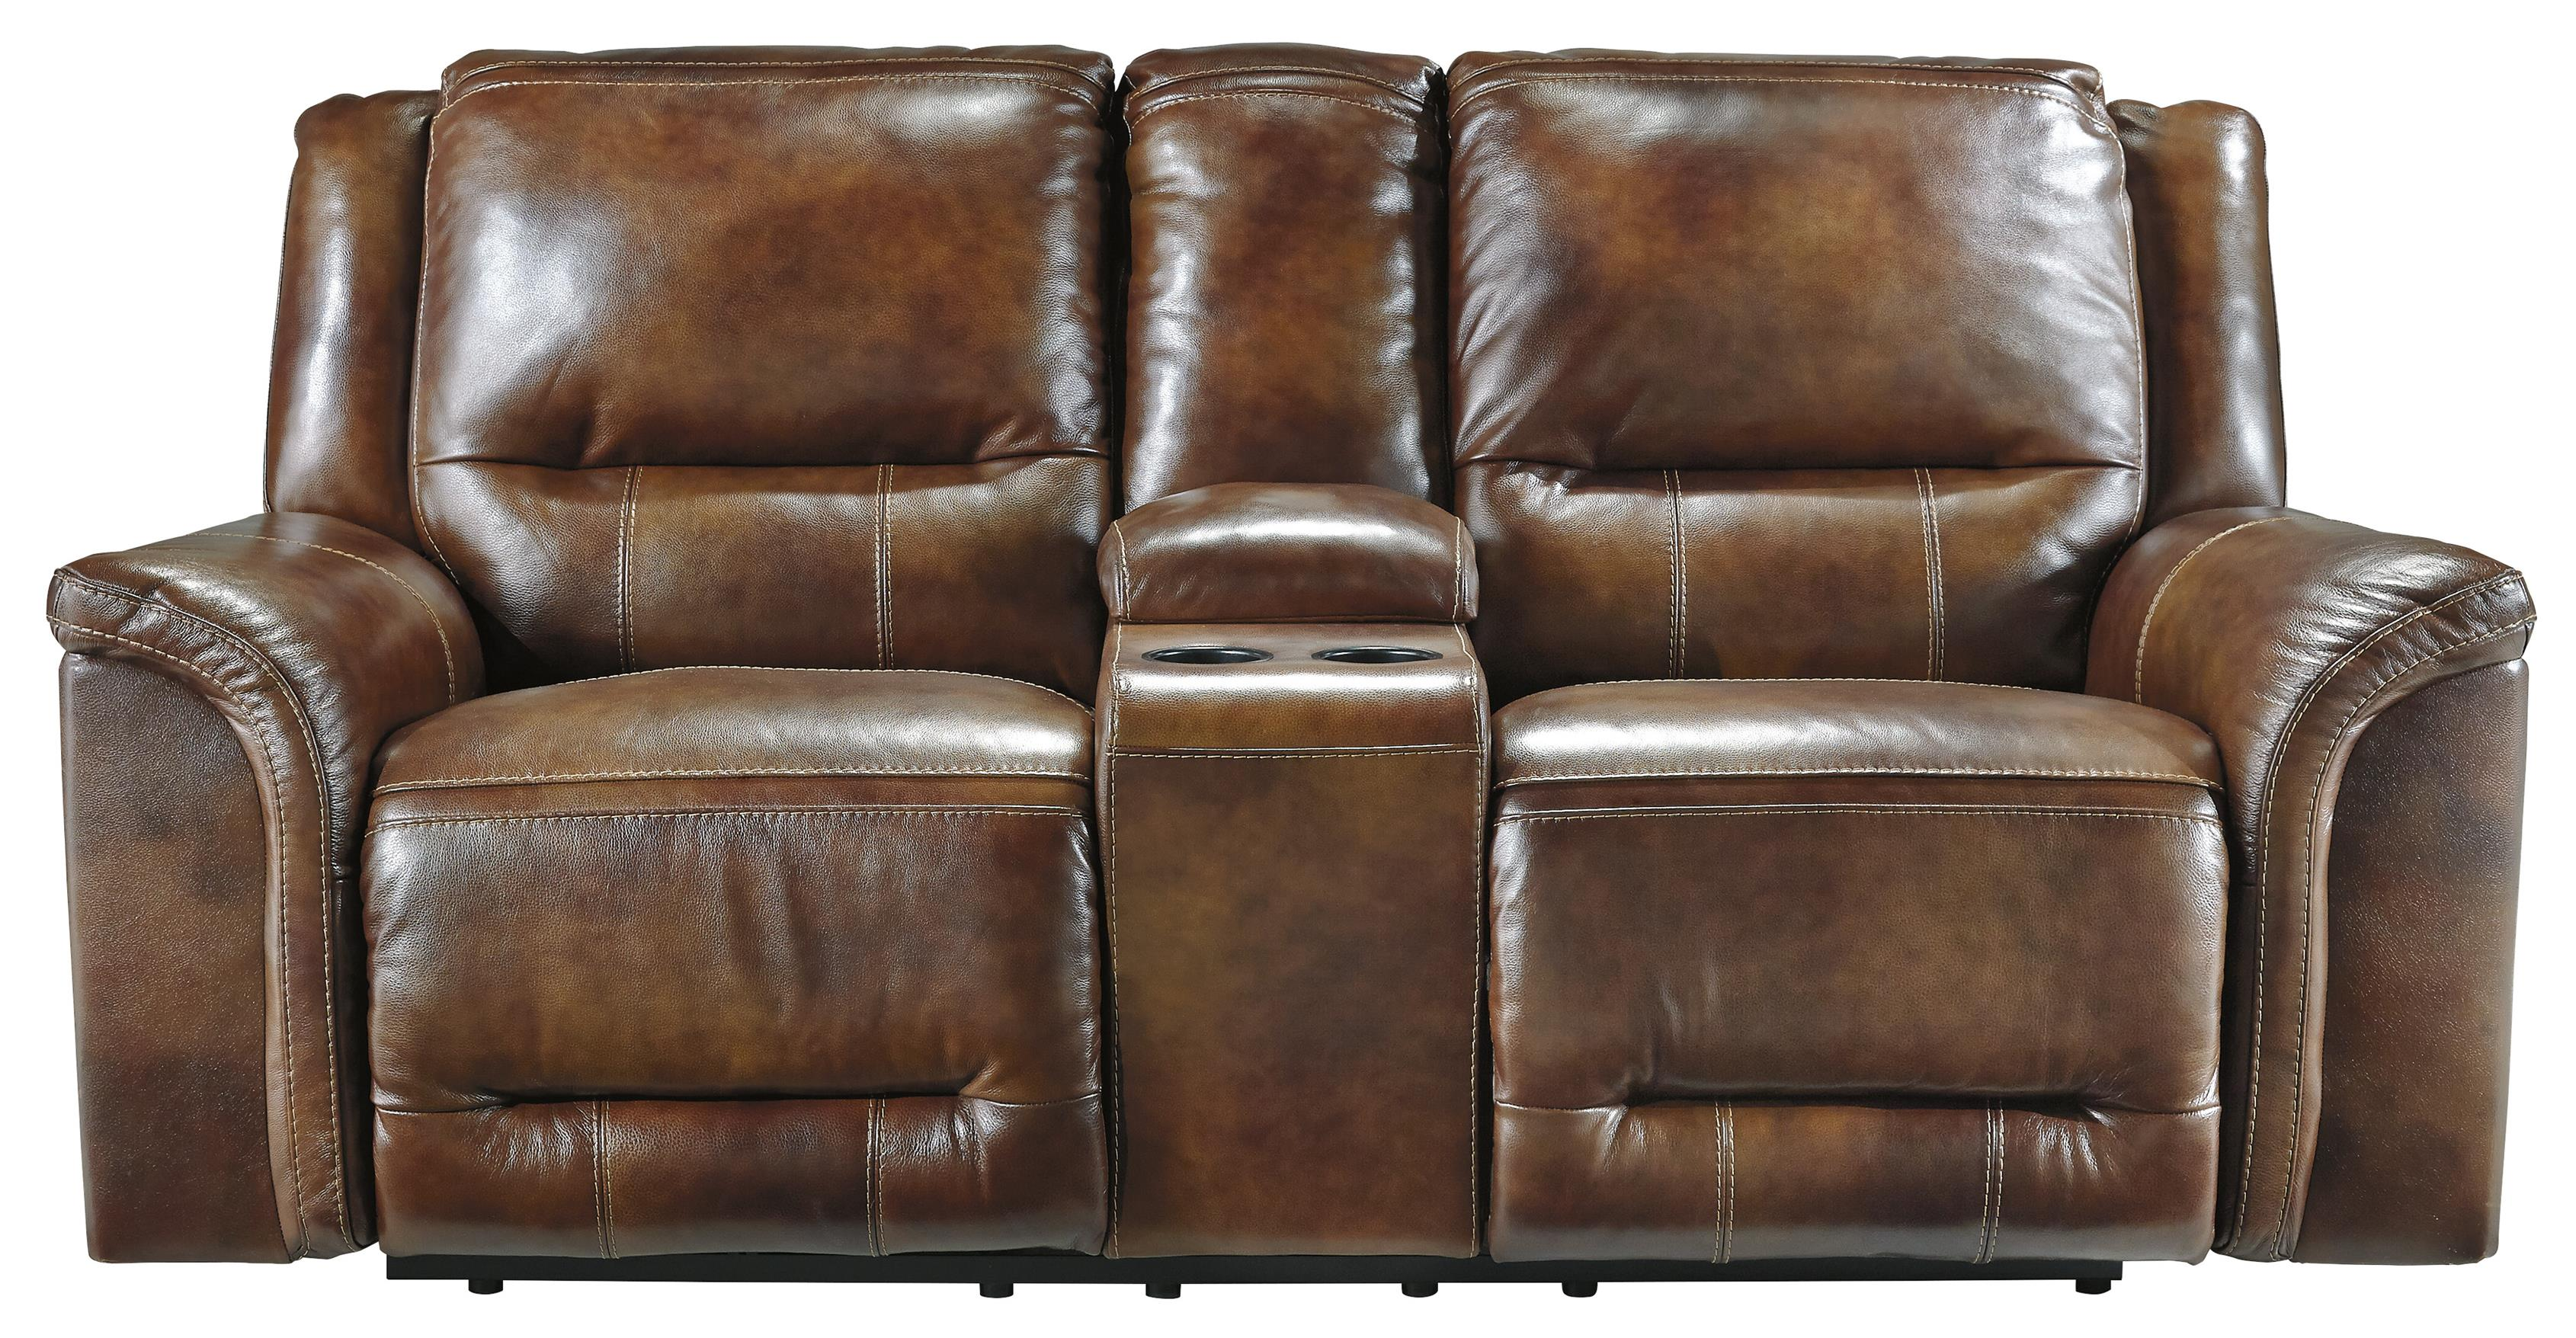 Signature Design by Ashley Jayron Double Reclining Loveseat w/ Console - Item Number: U7660094